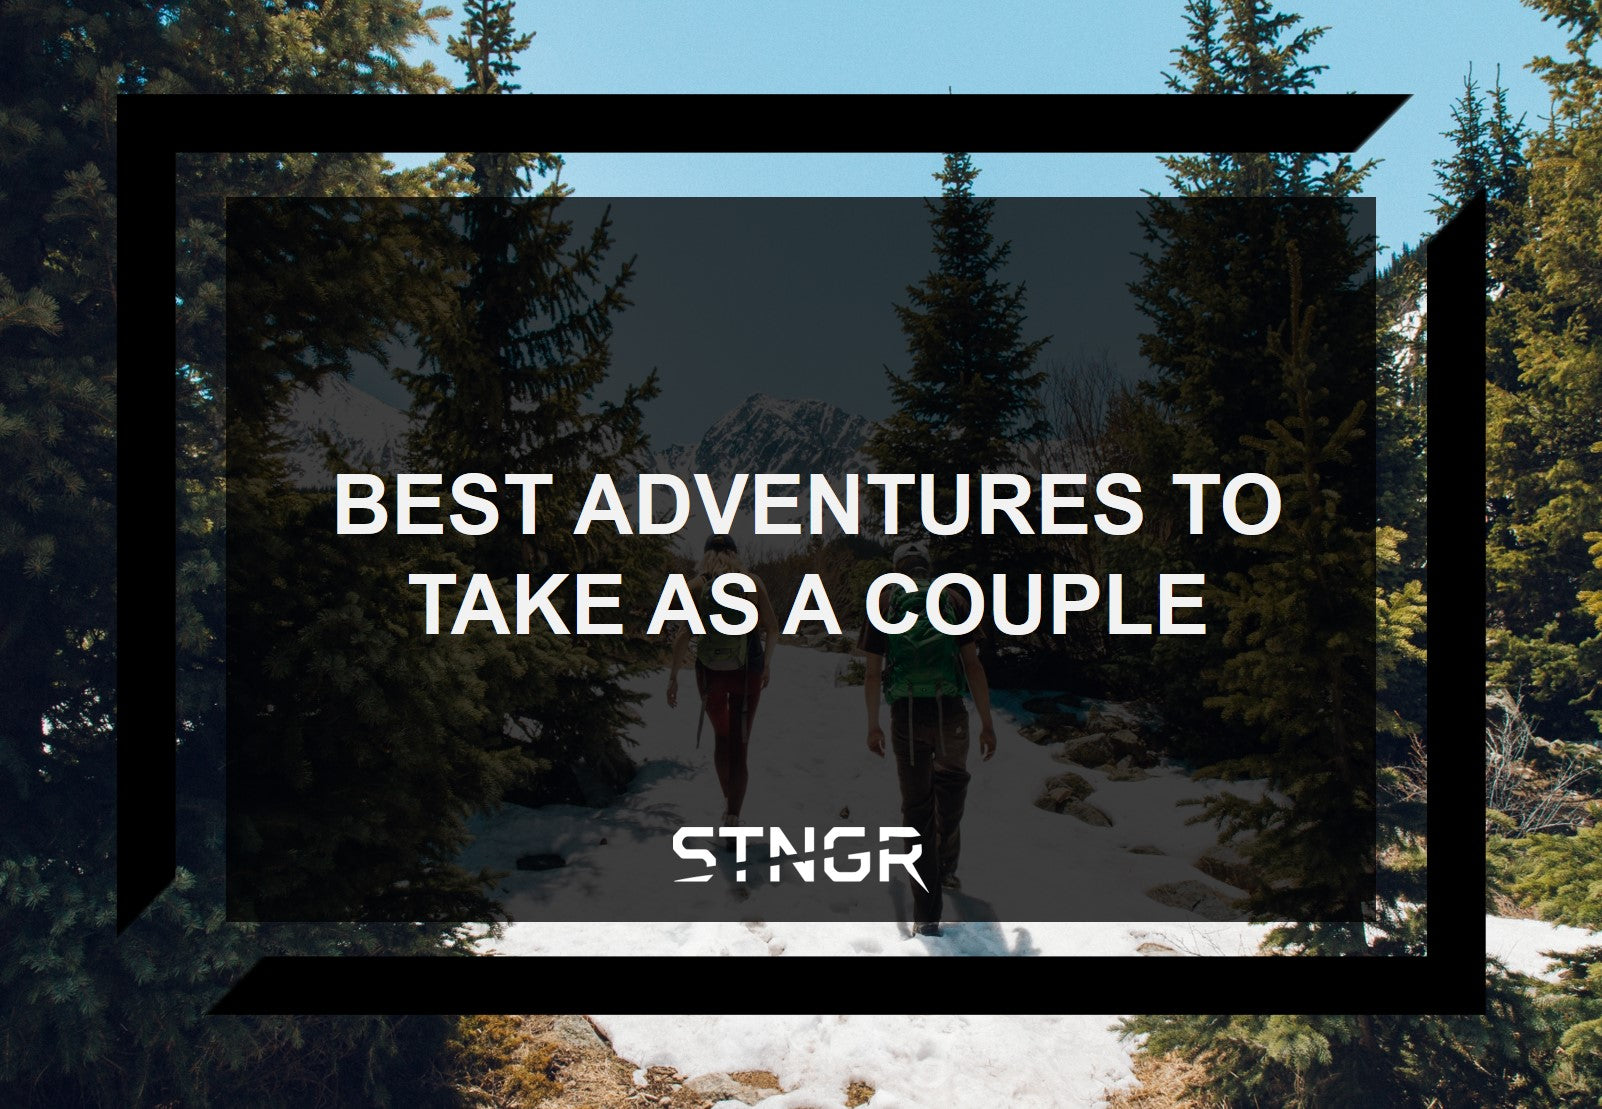 Best Adventures to Take as a Couple